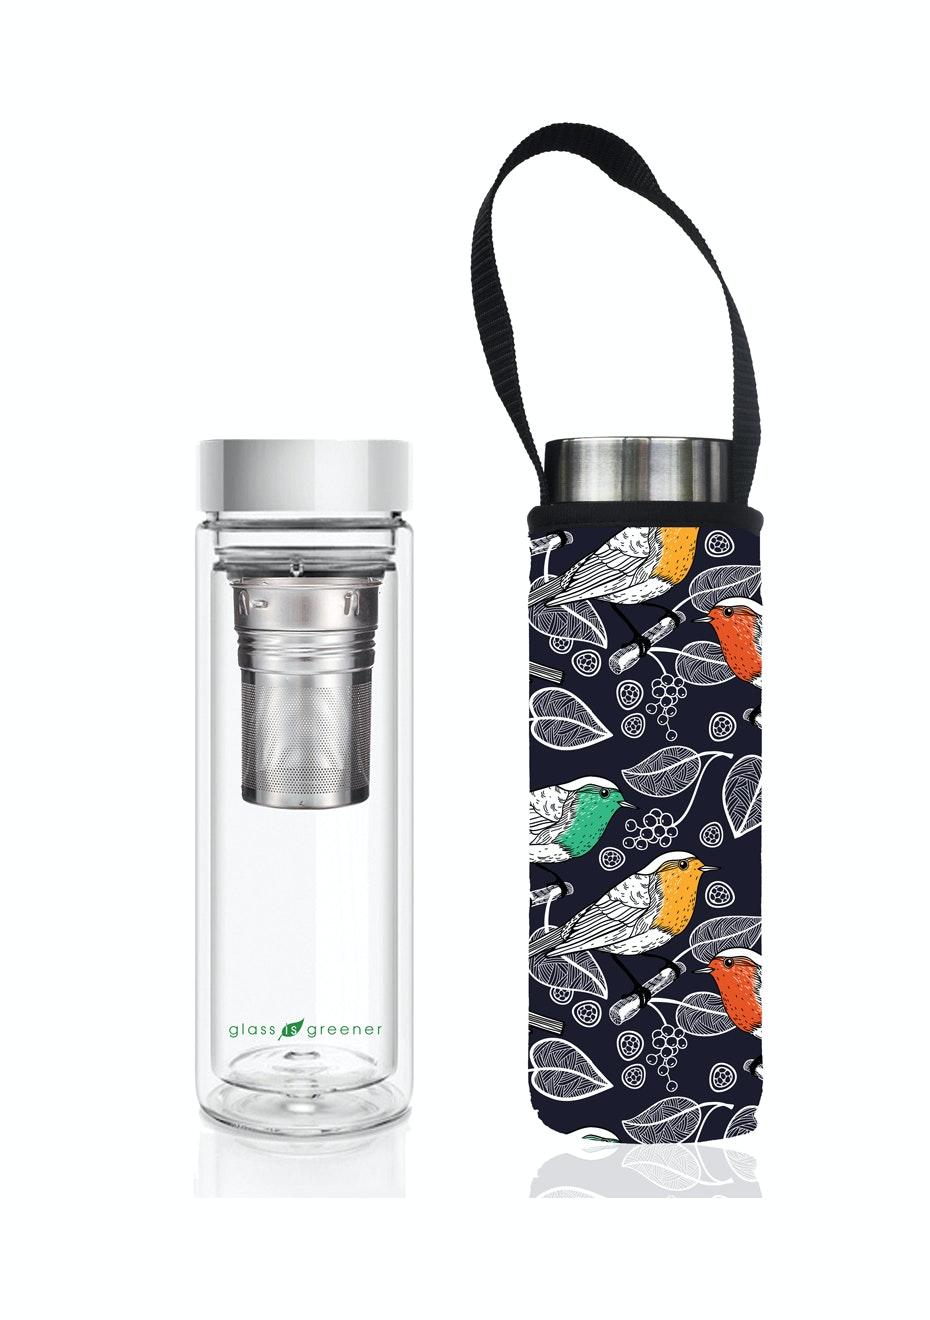 BBBYO - Glass Is Greener double-wall tea flask 500 ml + Carry Pouch (Chirp Print) -500 ml